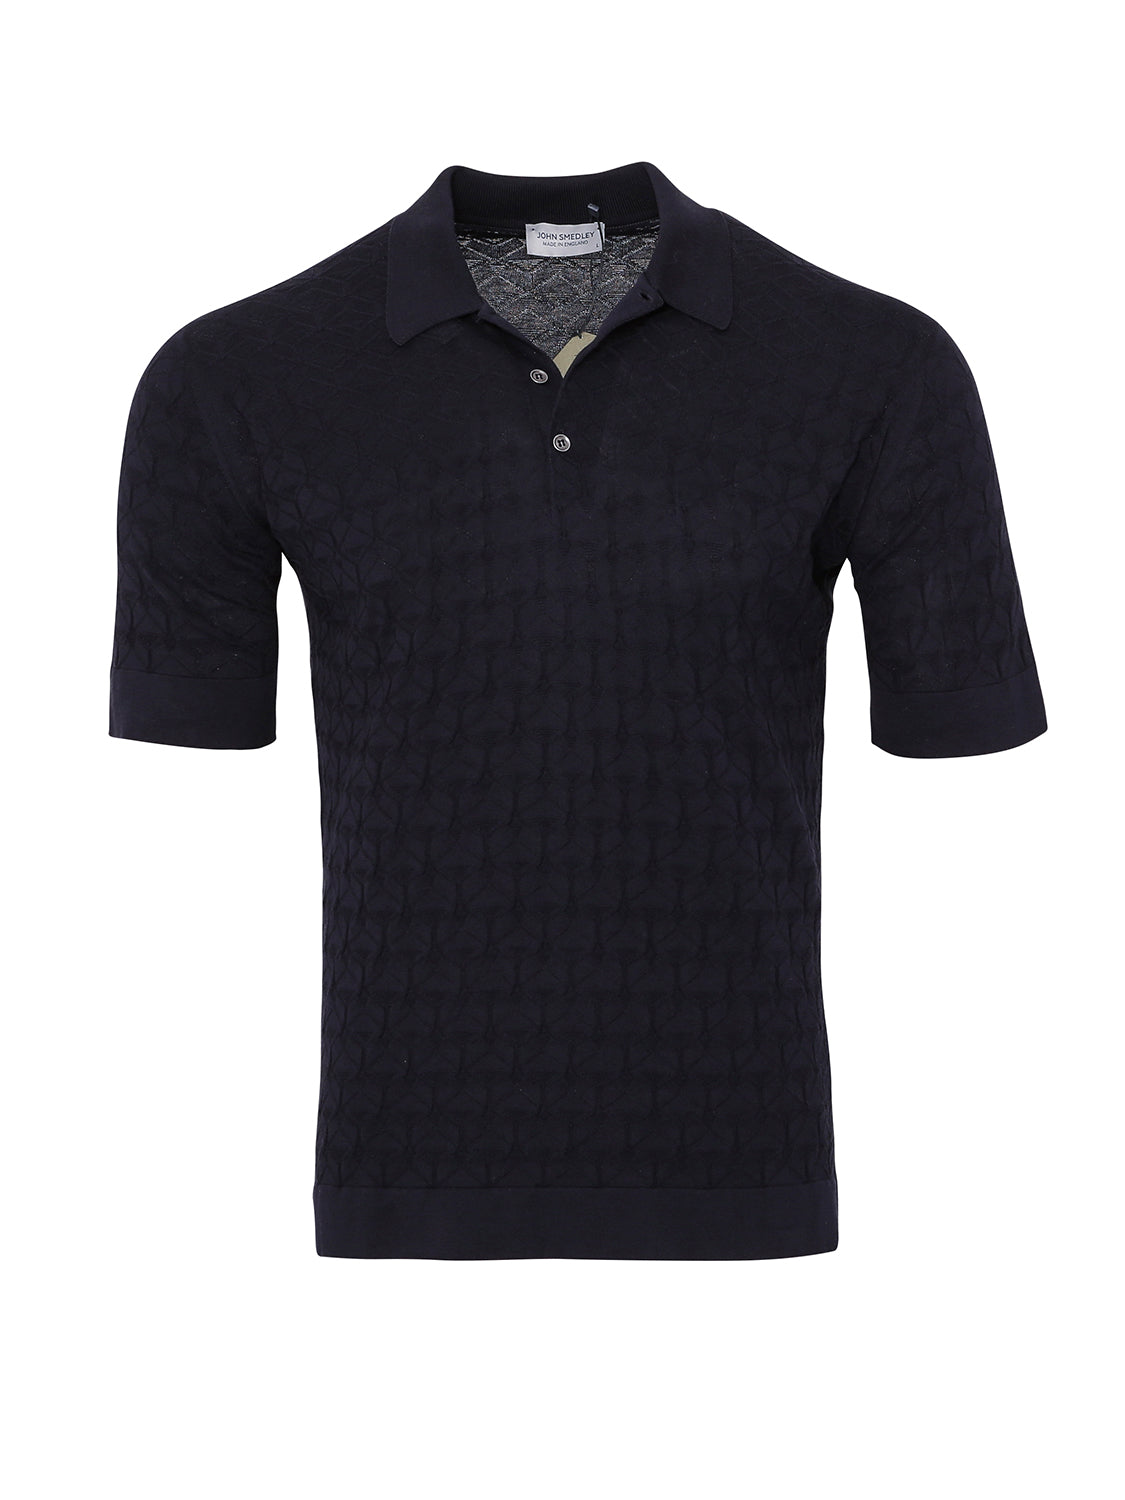 John Smedley Textured Forestry Short Sleeve Polo (Navy) - Union 22